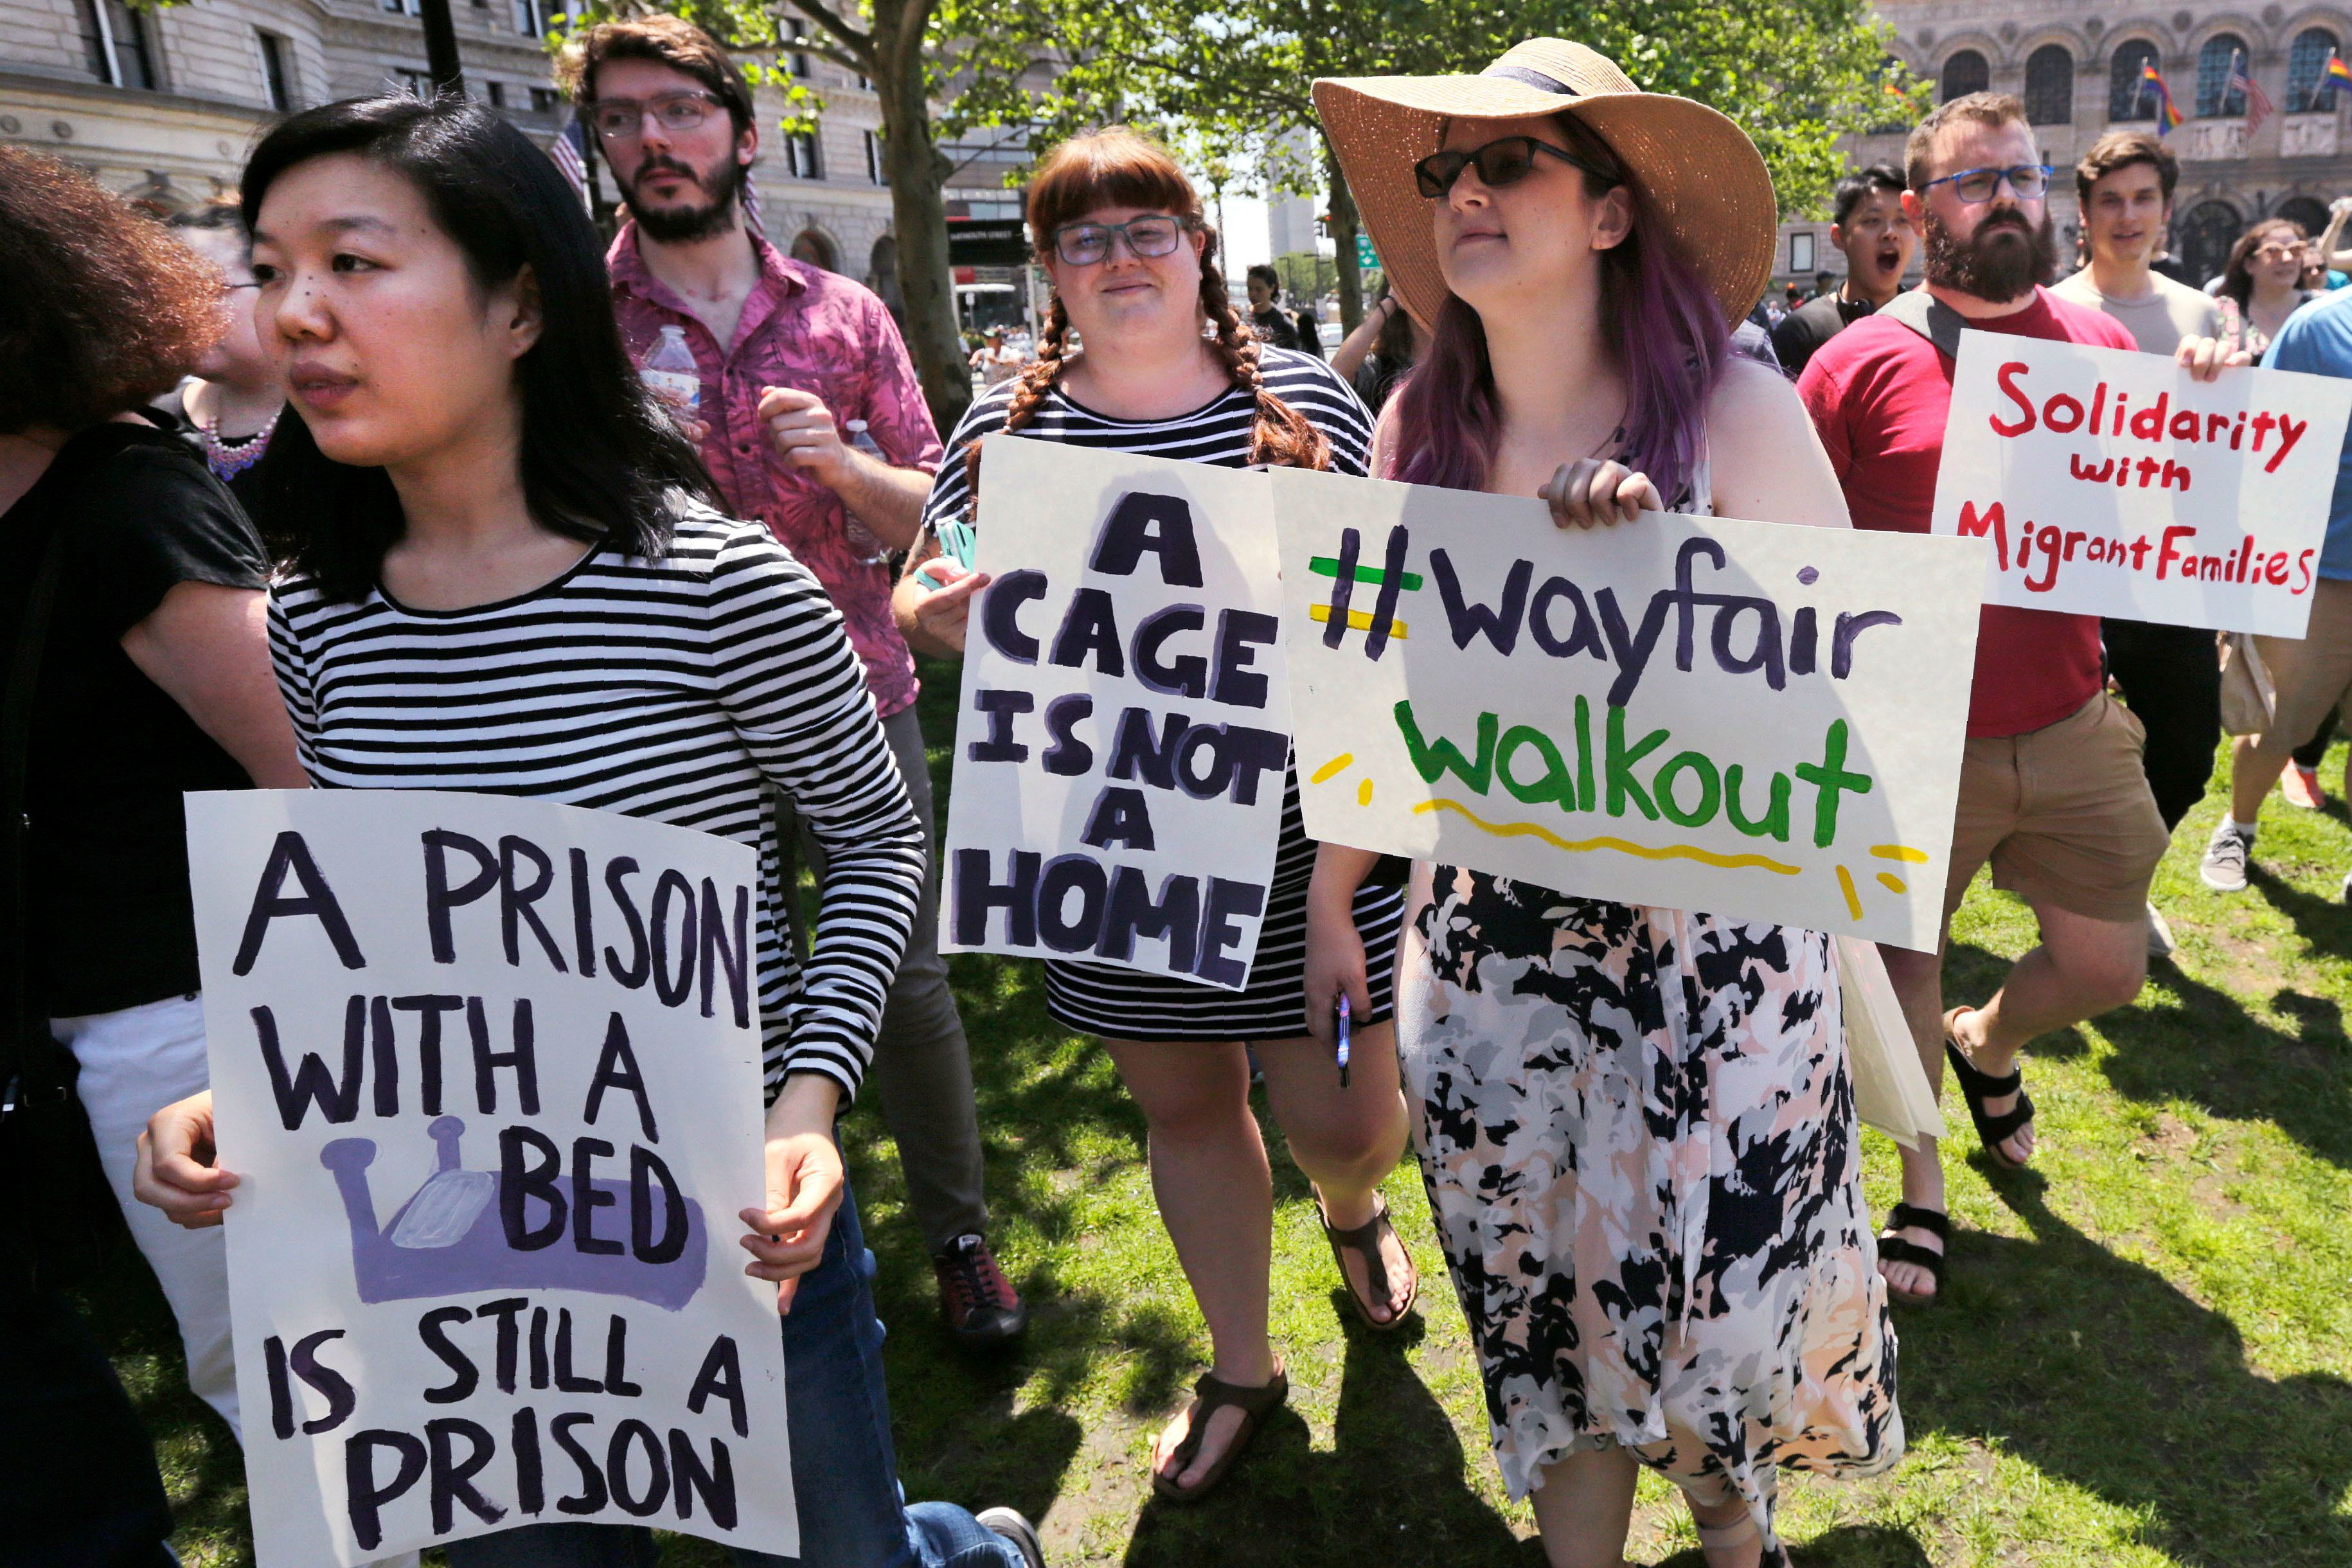 Trump official defends Wayfair bed sale to border detention camp